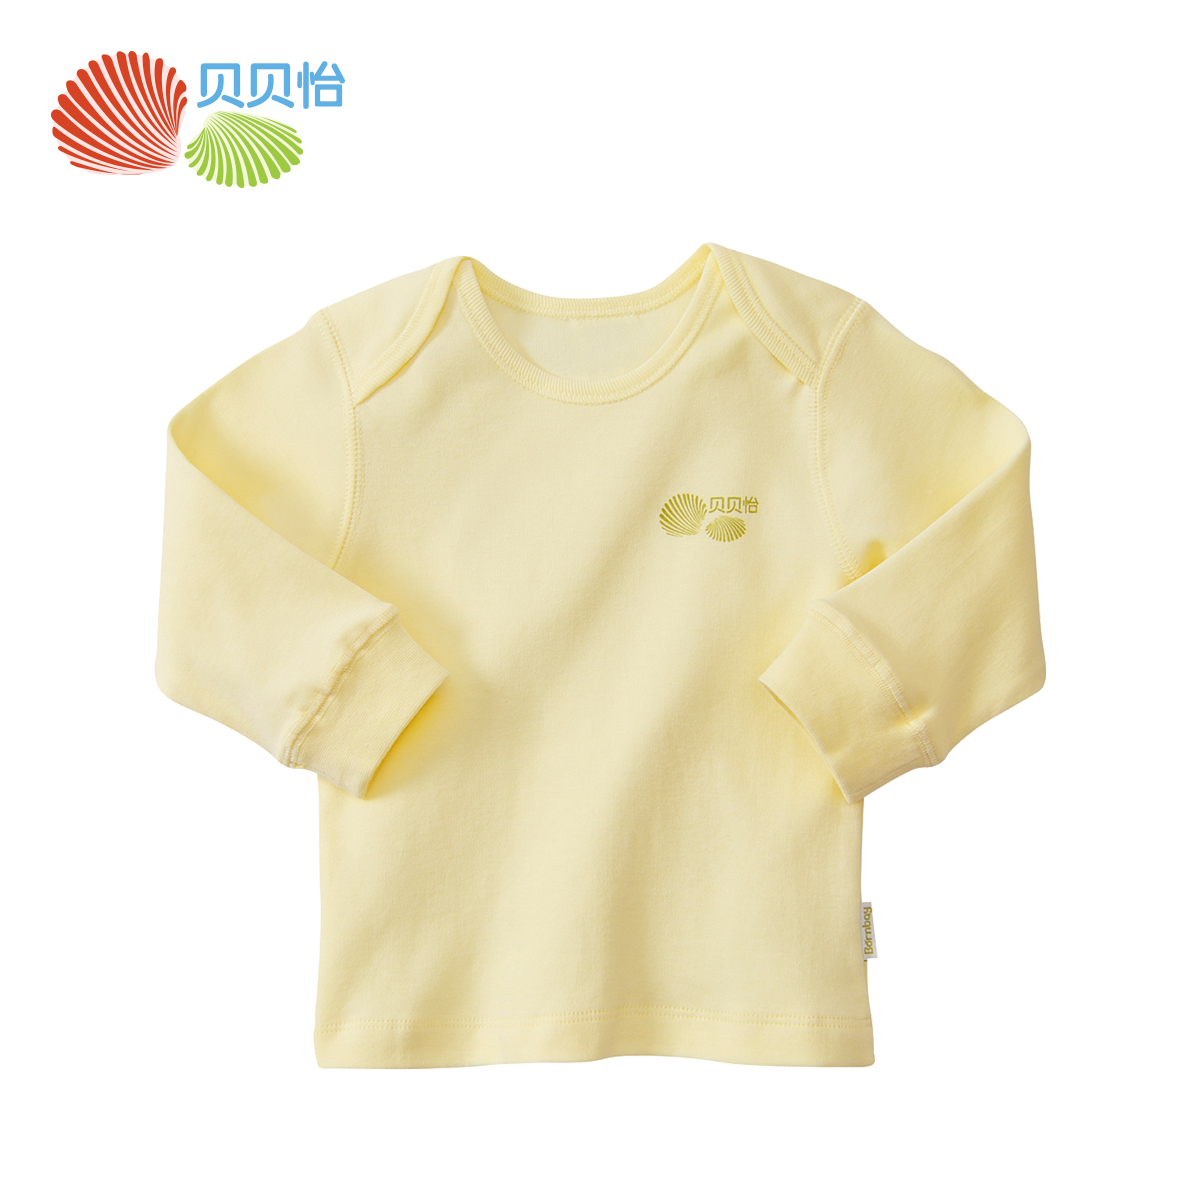 Beibei yi baby clothes spring and autumn newborn baby cotton underwear for men and women long sleeve pullover shirt t-shirt BB307